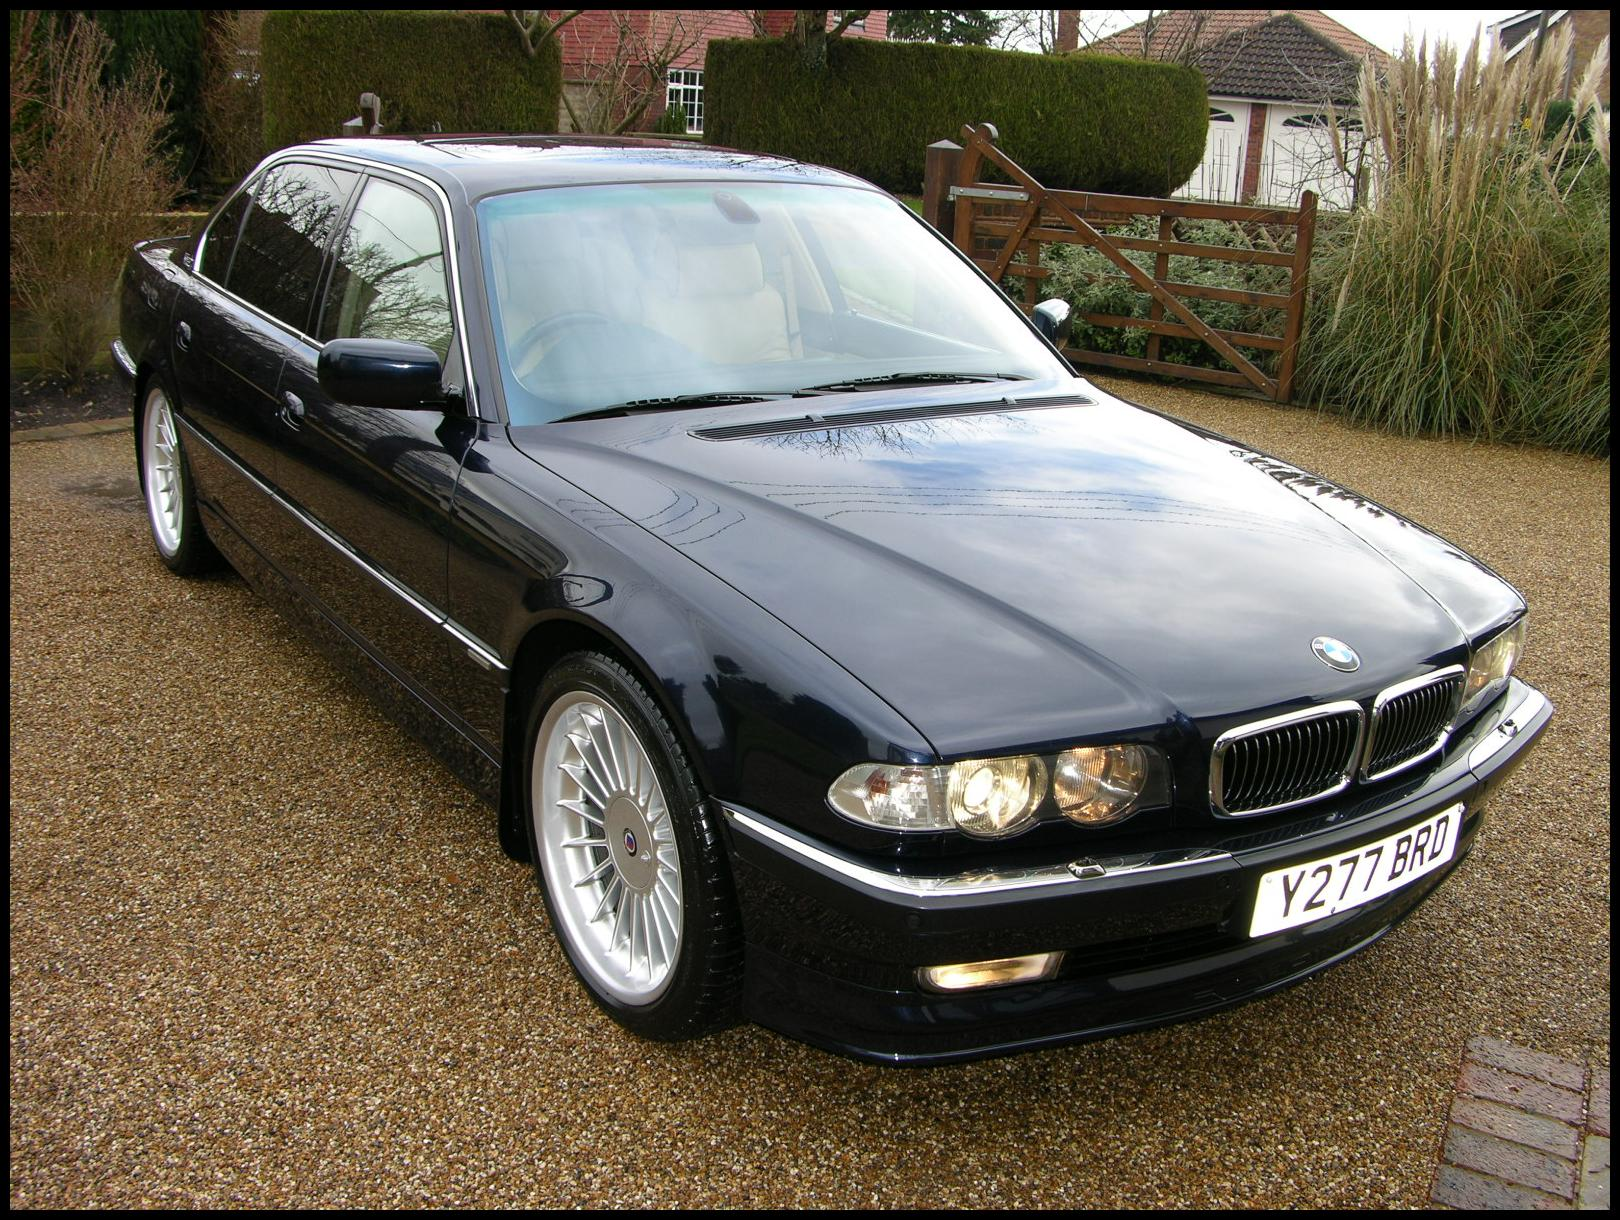 BMW 750iL | Flickr - Photo Sharing!